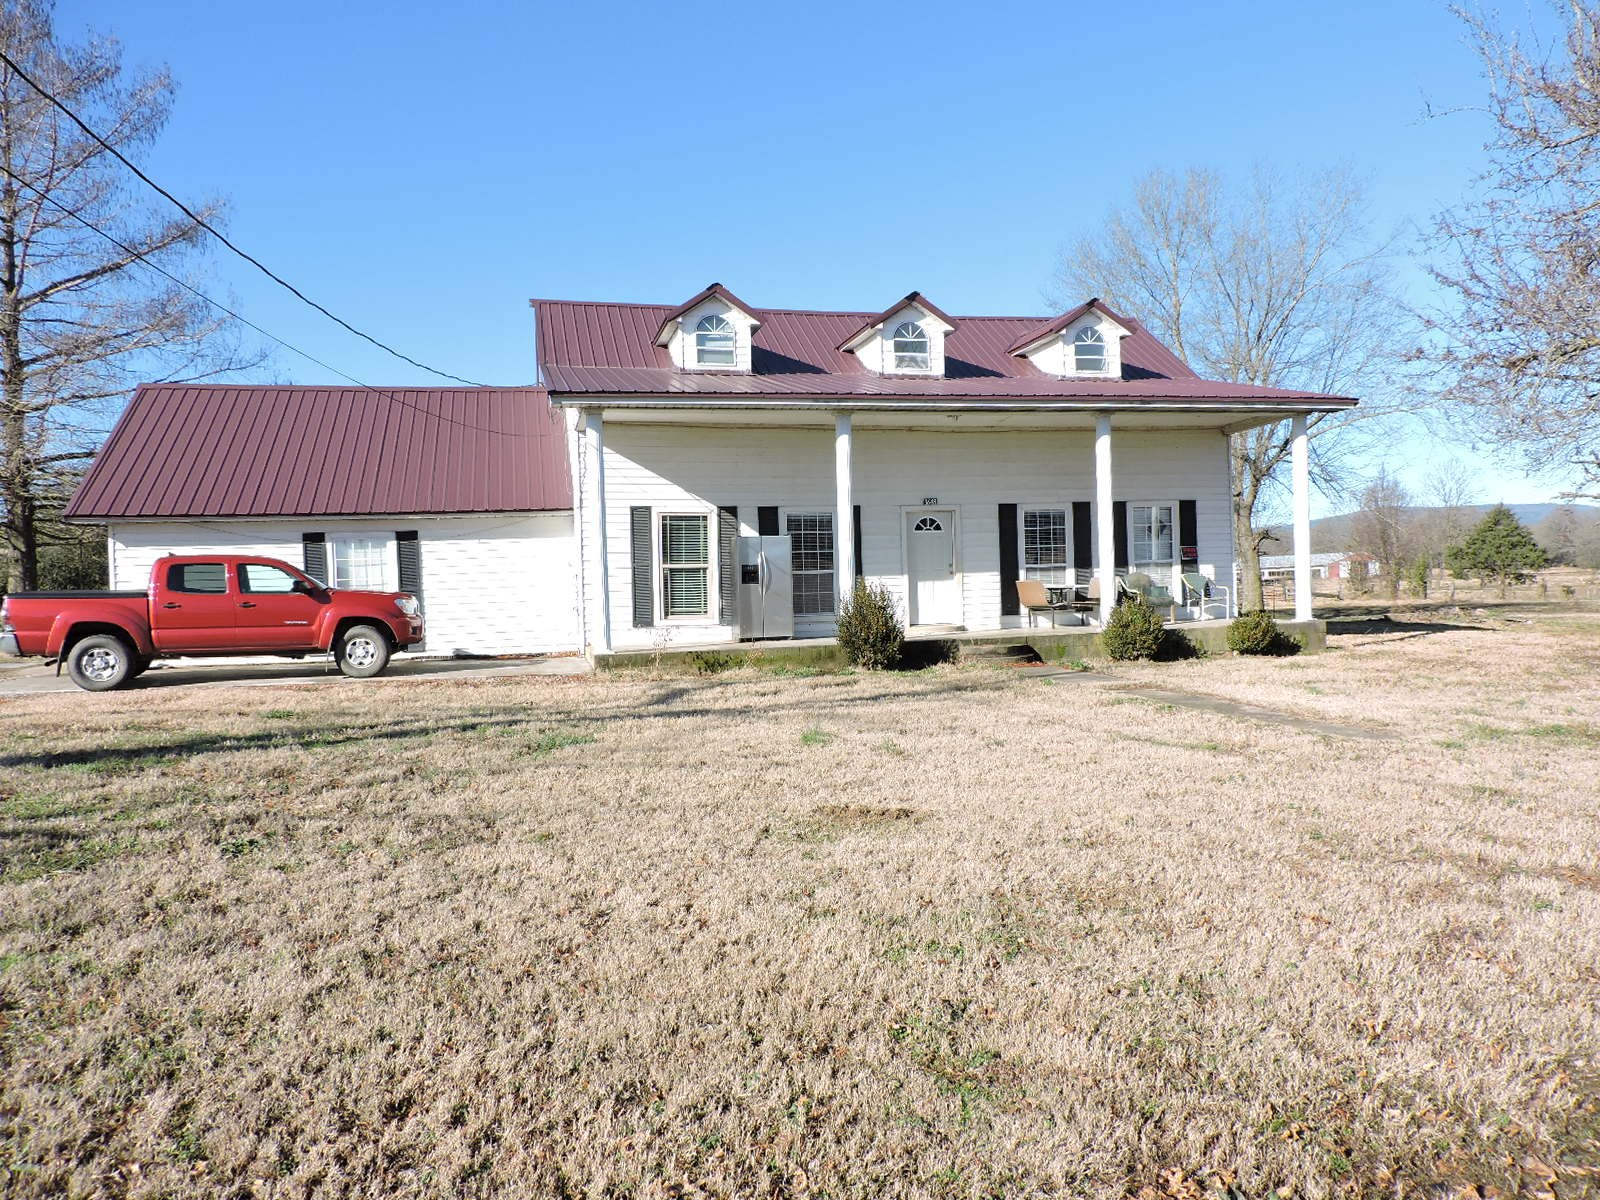 Country Farm Home With 4 Bedrooms and Acreage